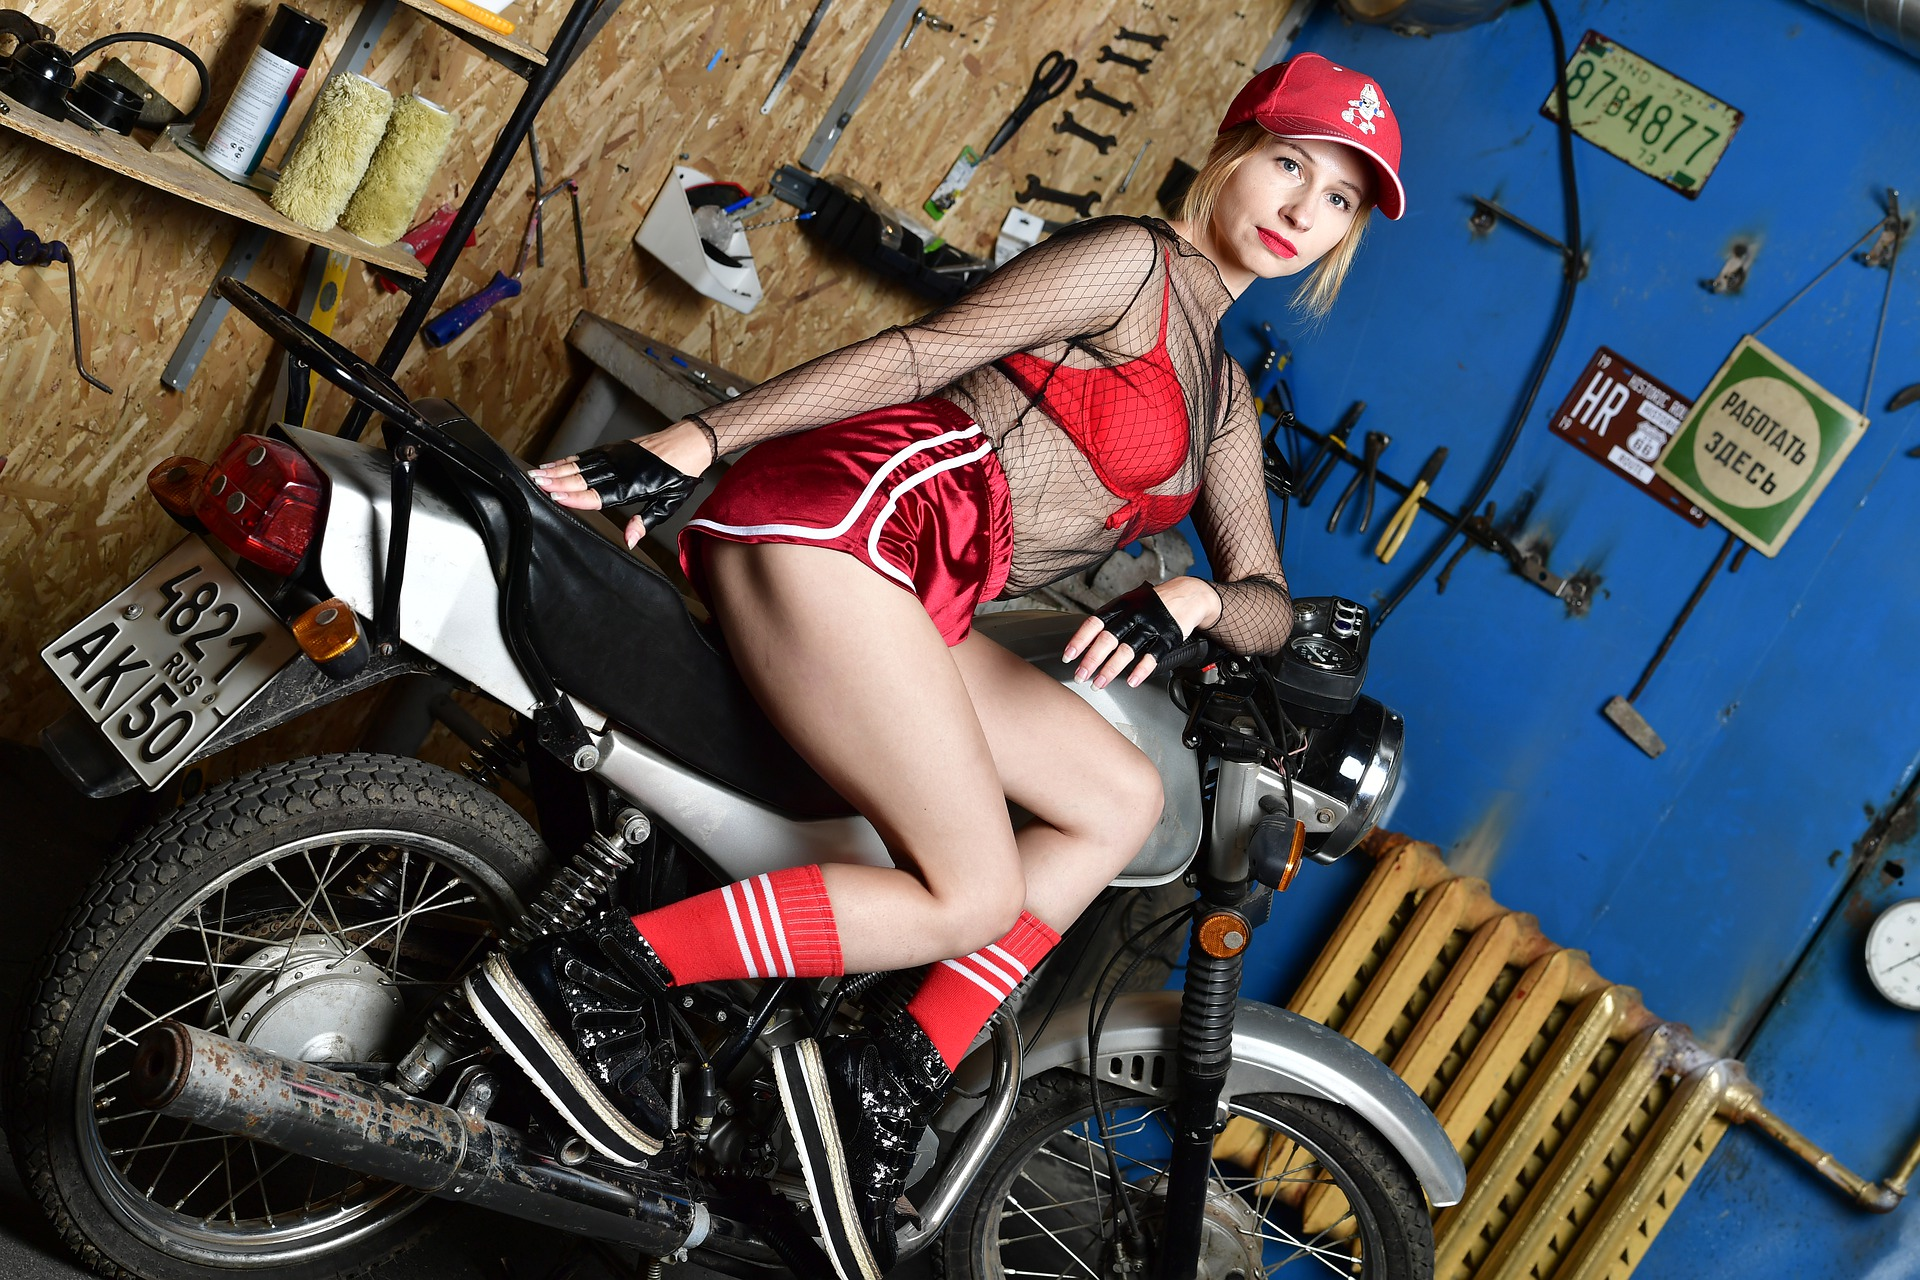 motorcycle-4607843_1920